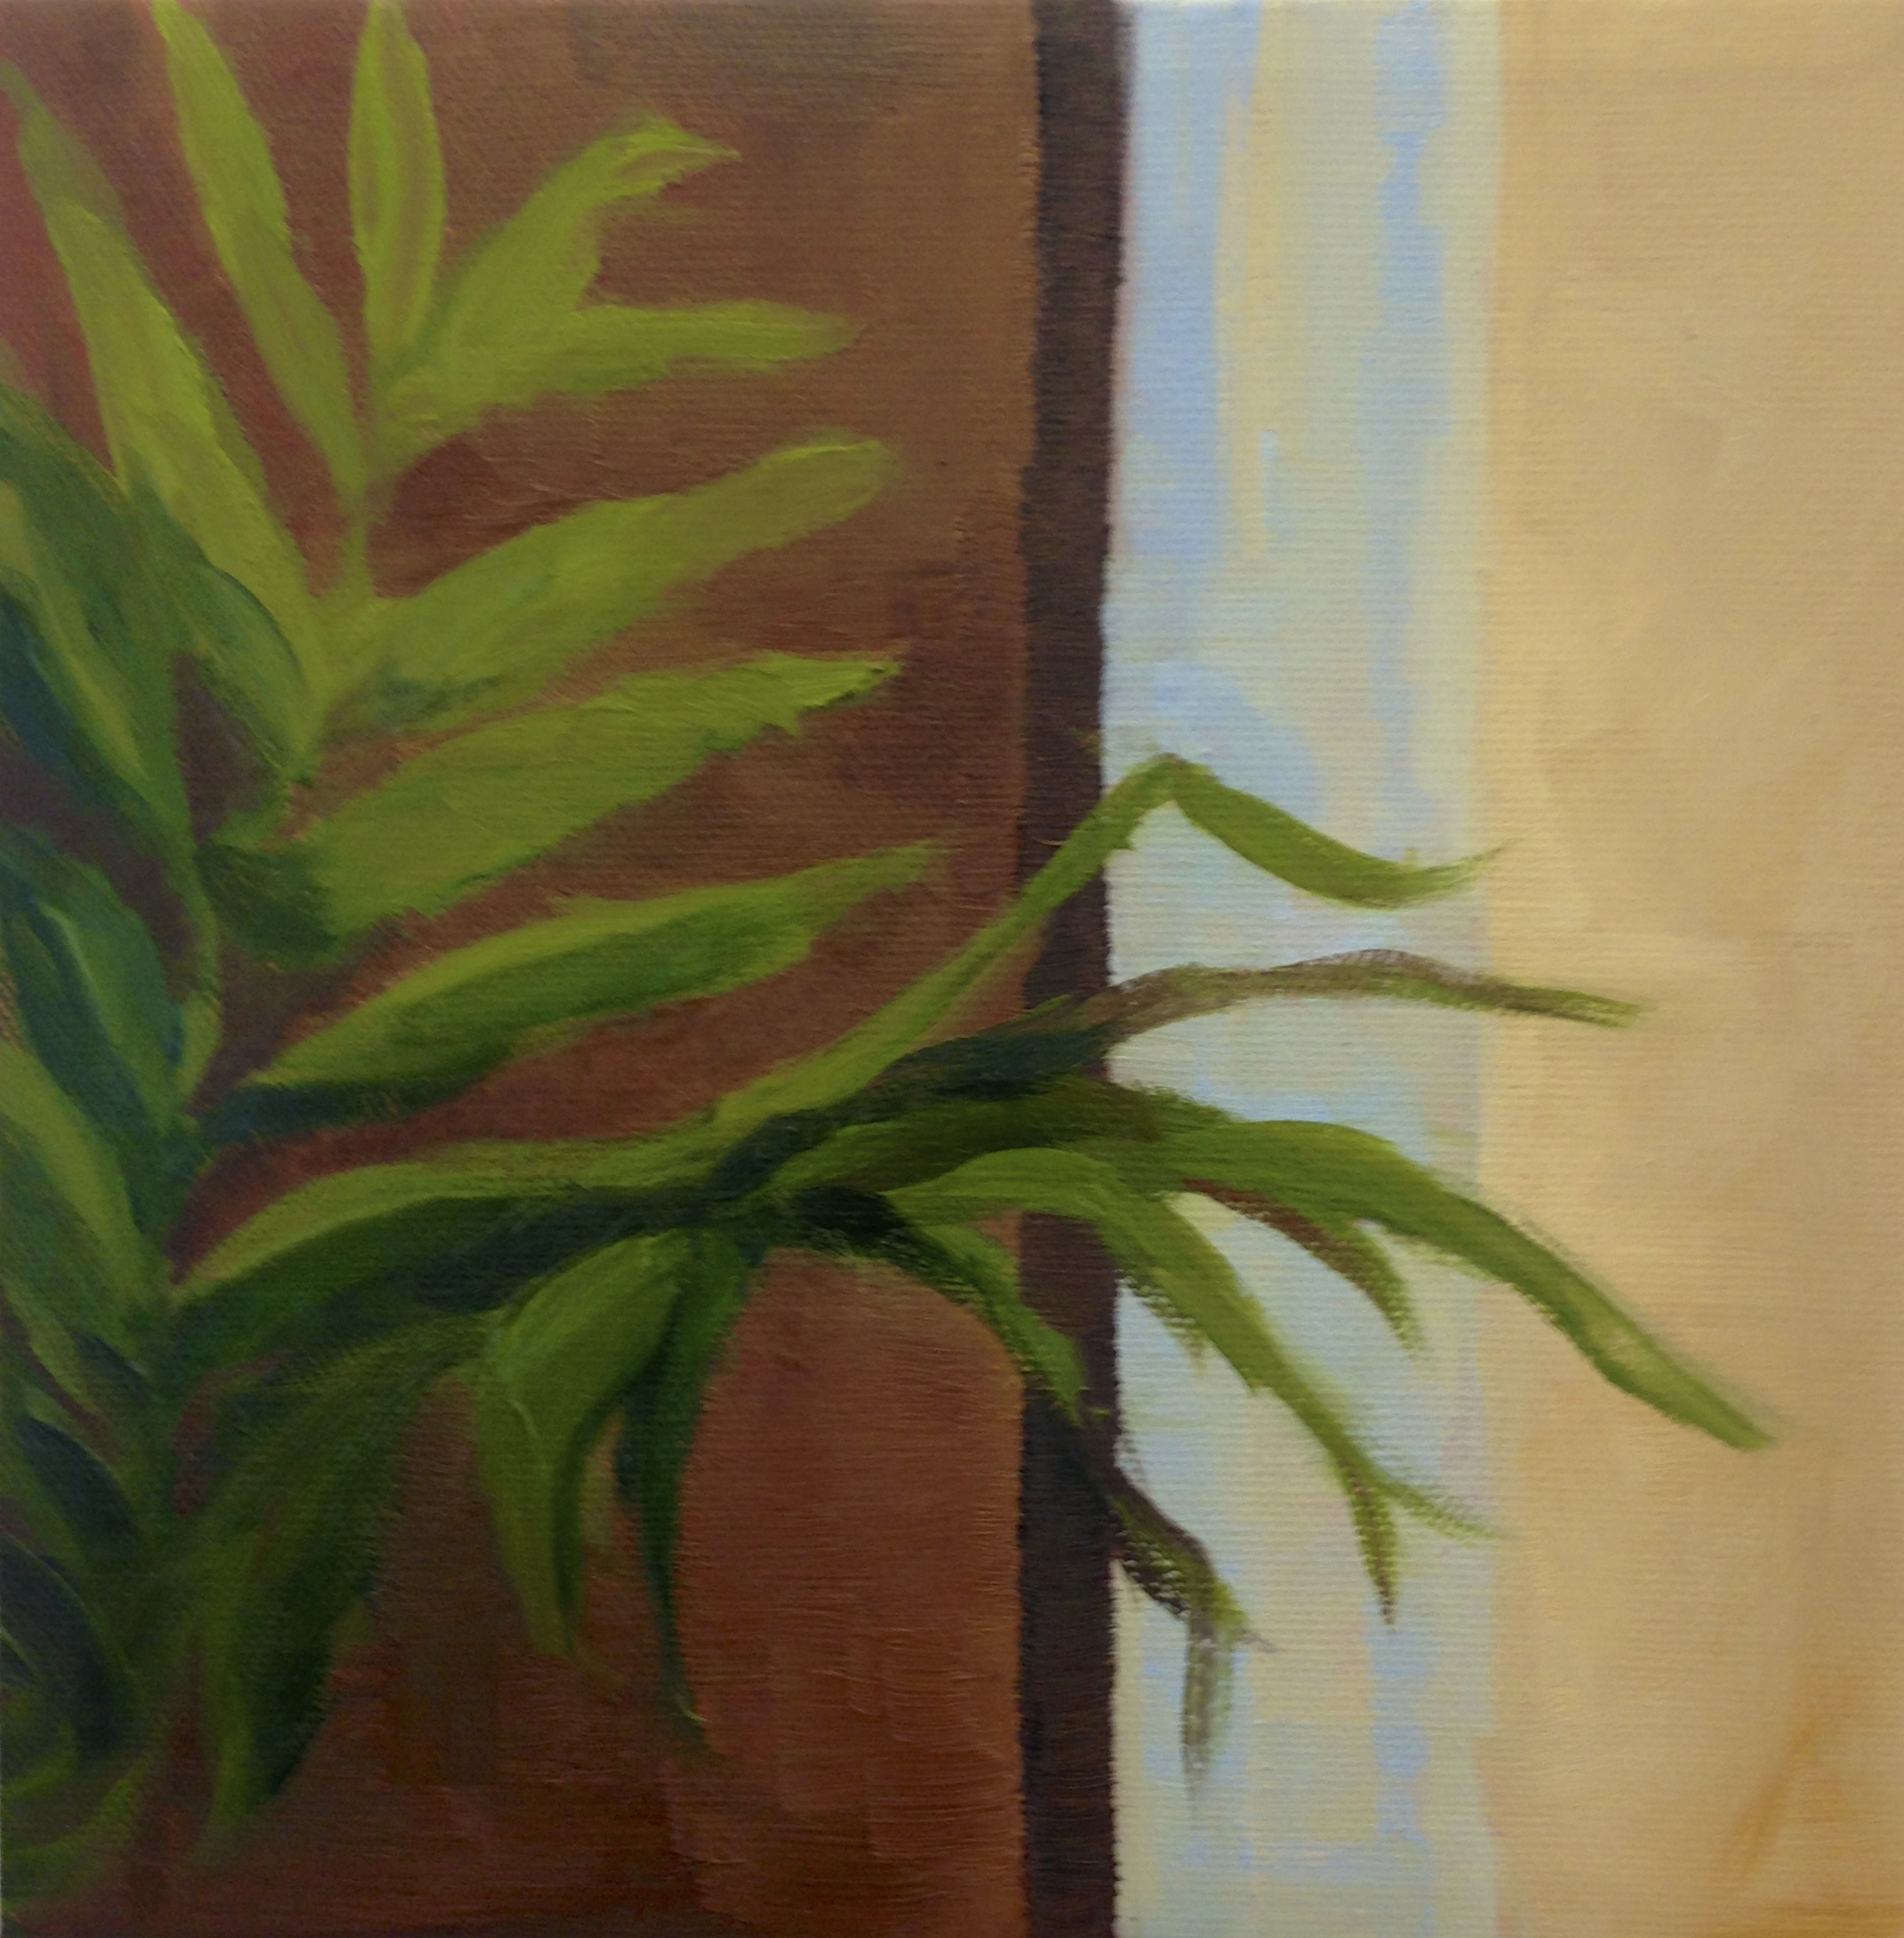 "Plant Series II , Oil on Canvas, 12 x 12"", 2013"